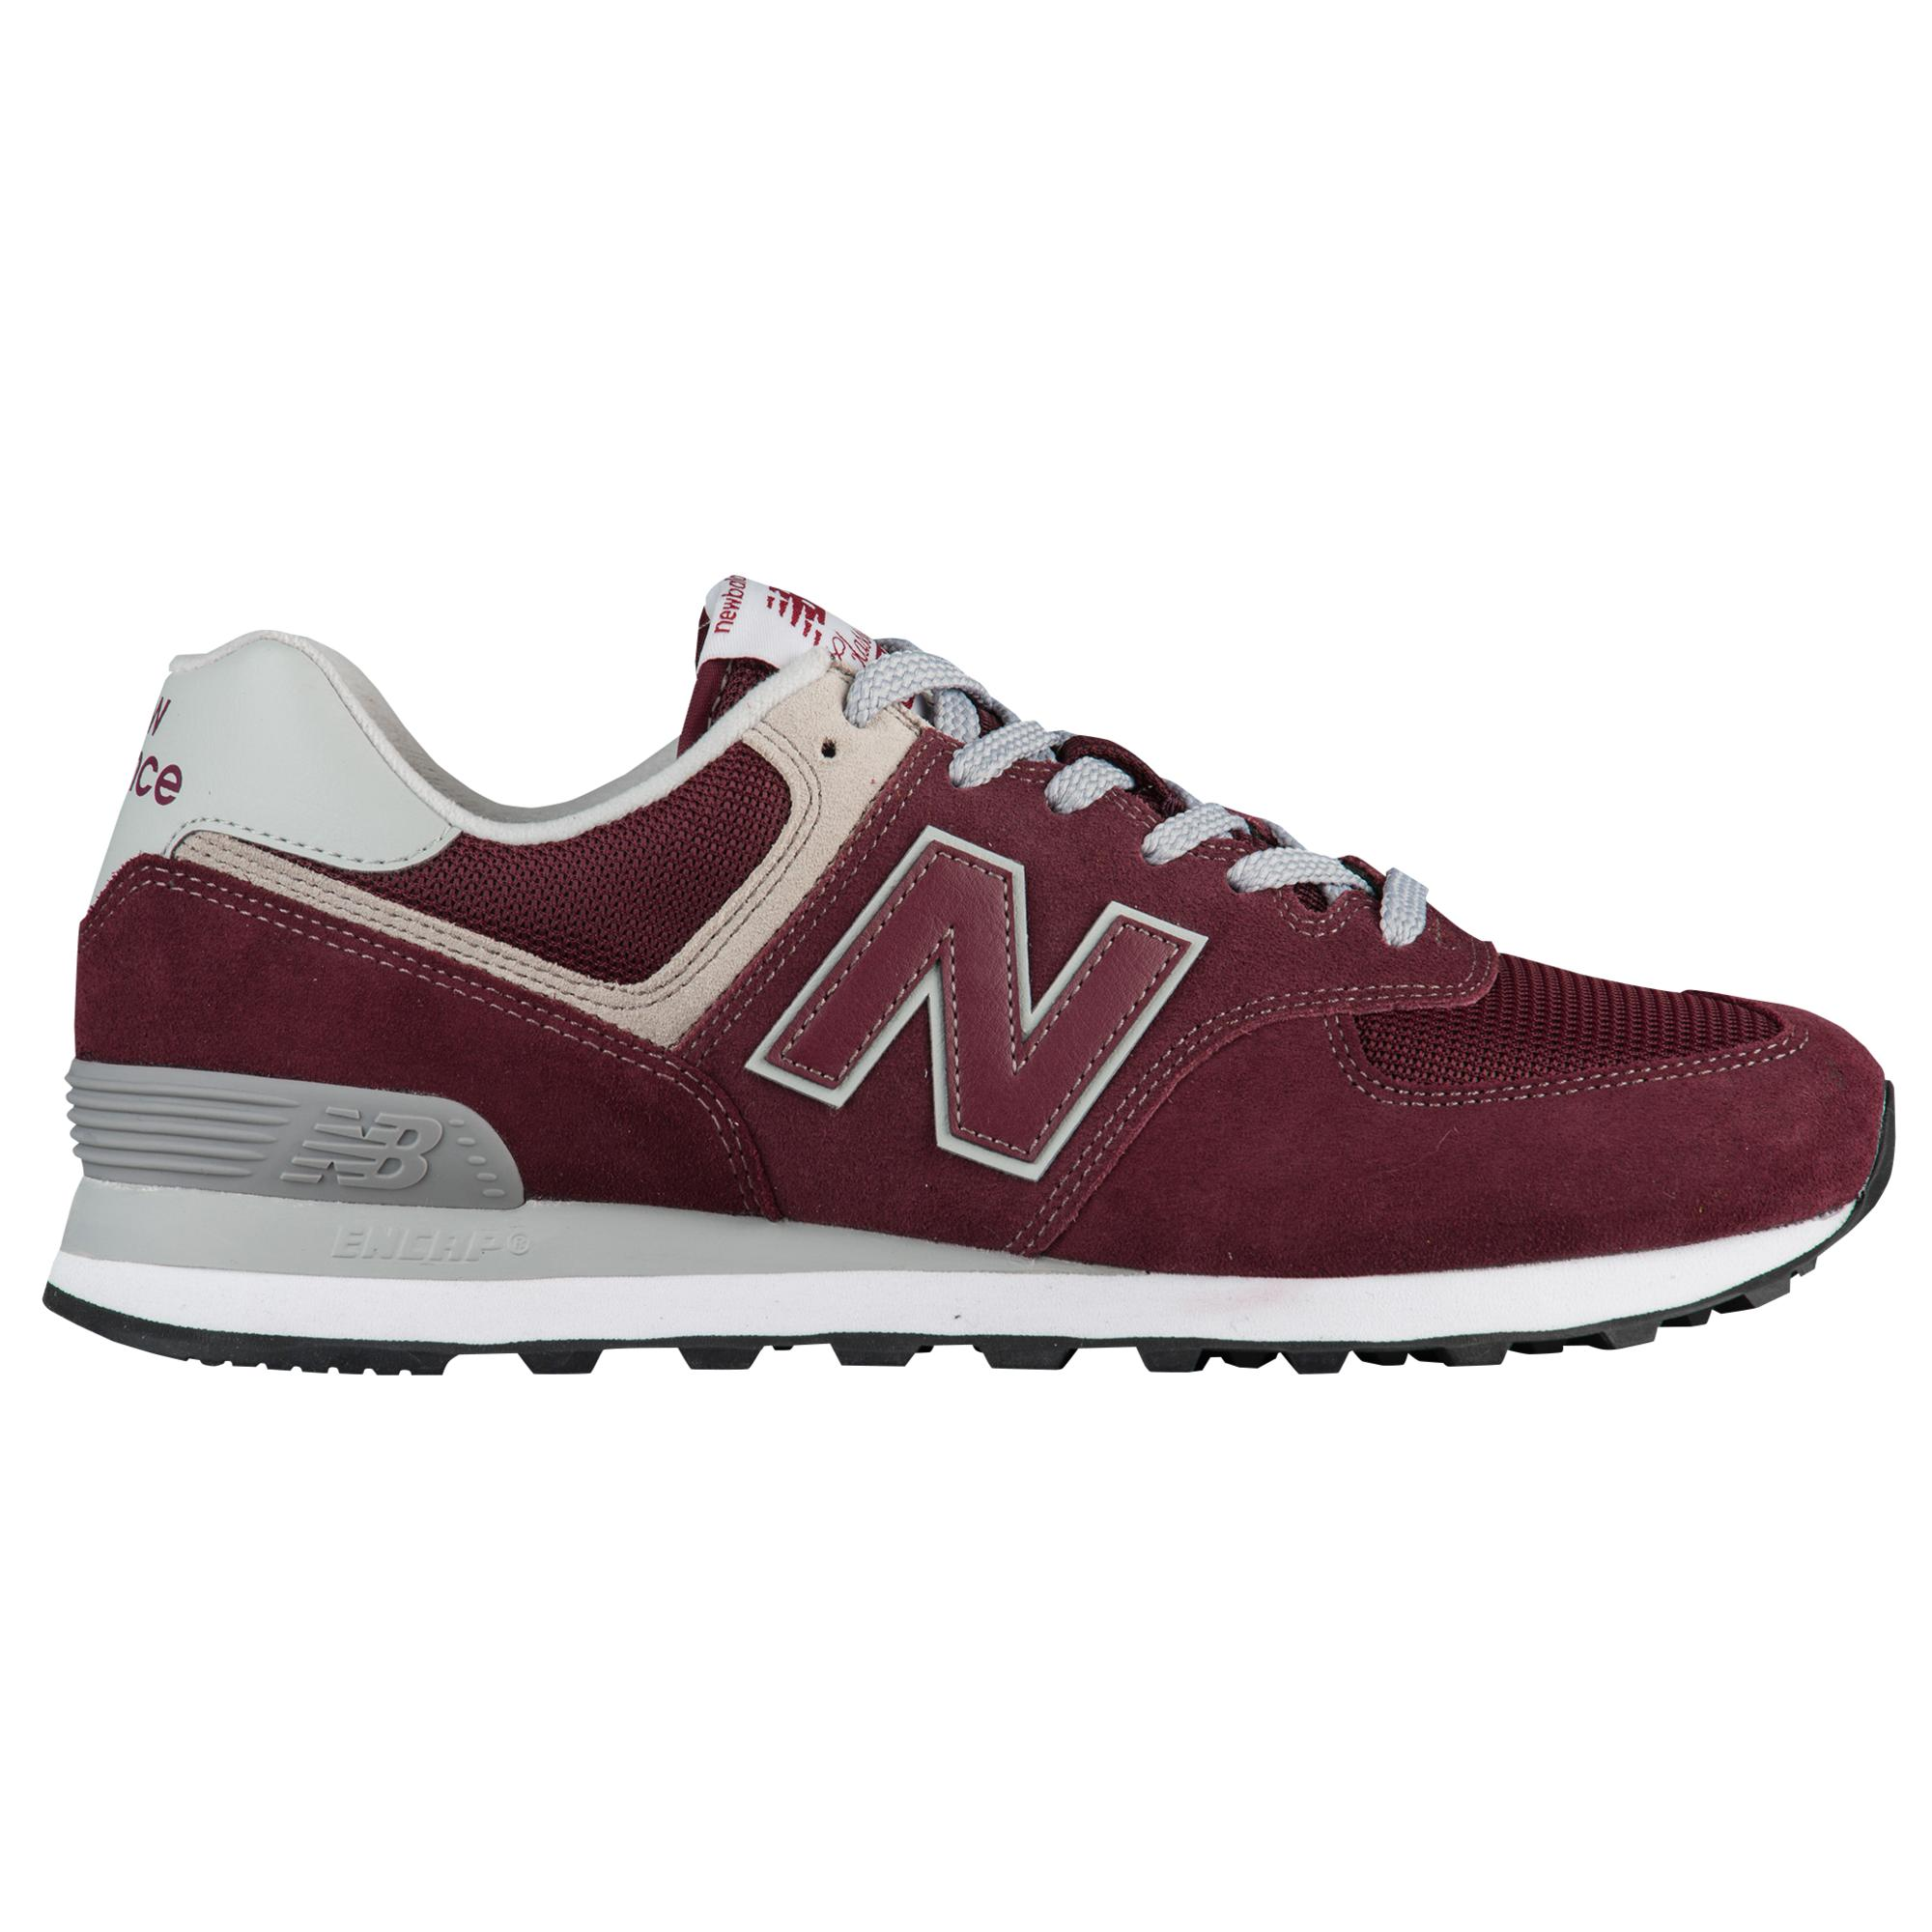 low priced 5425e 3badf Men's 574 Classic Running Shoes